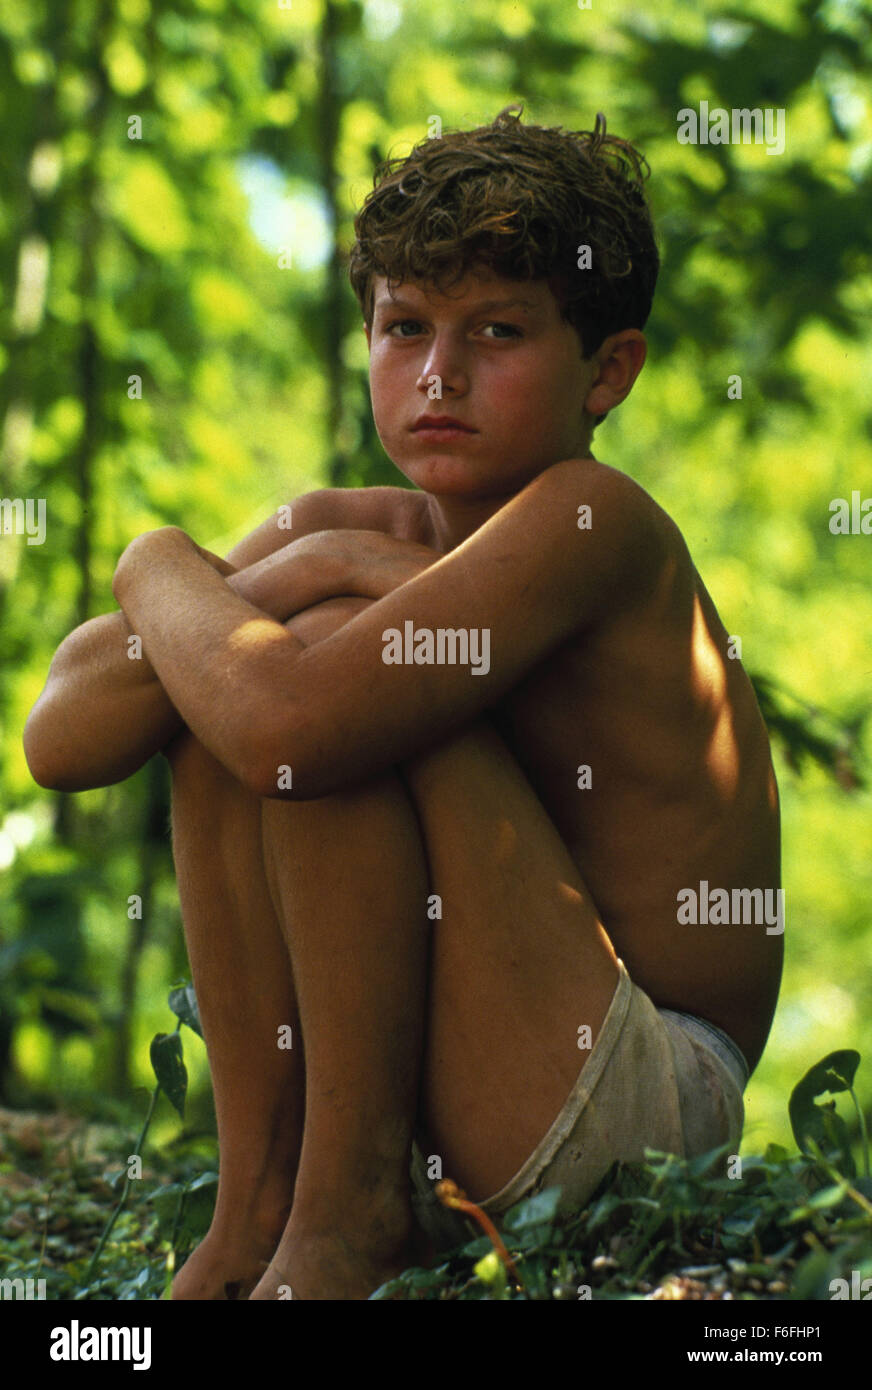 lord of the flies 1990 movie download